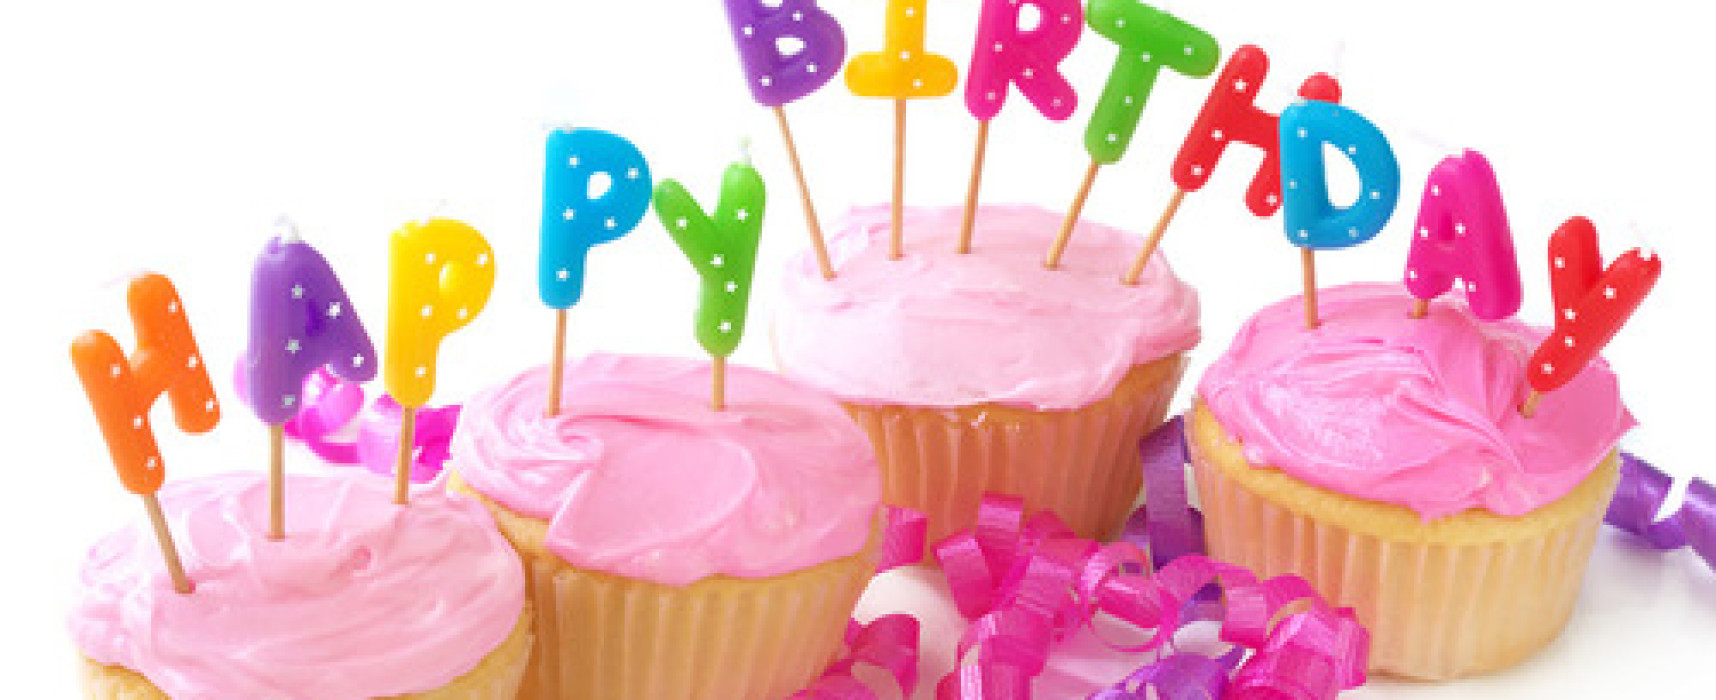 Three Great Ideas to Celebrate a Birthday